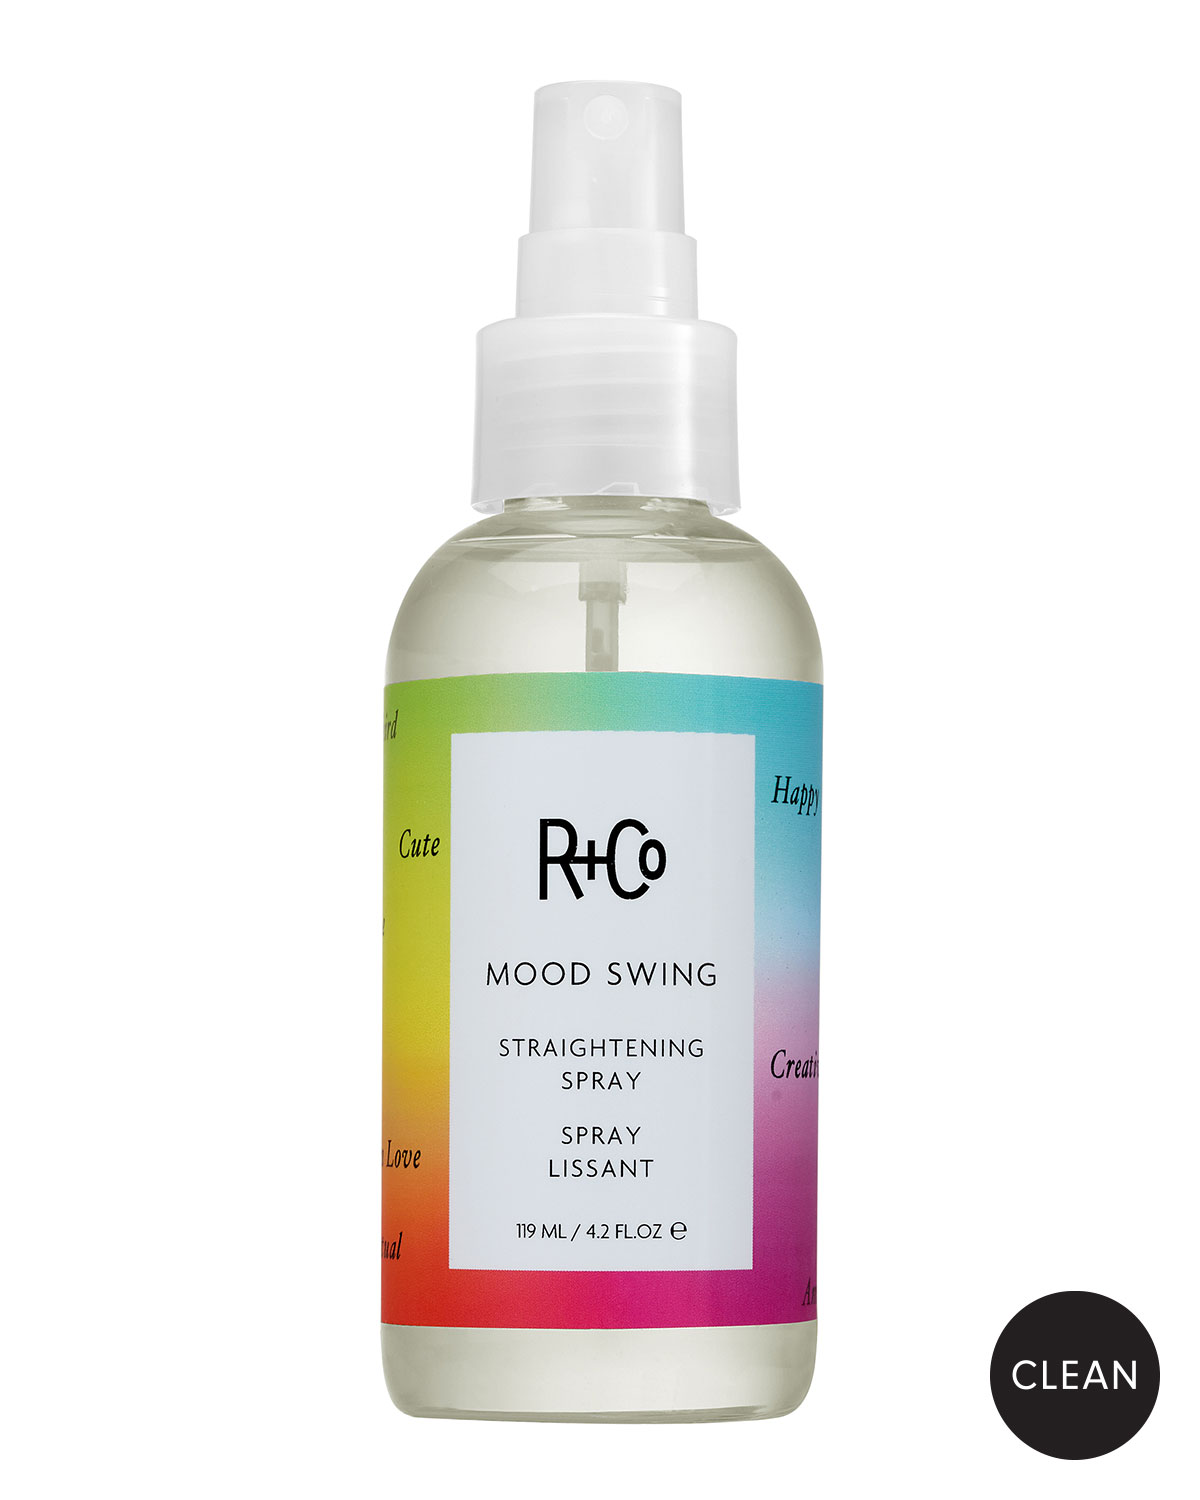 R+Co 4.2 oz. Mood Swing Straightening Spray